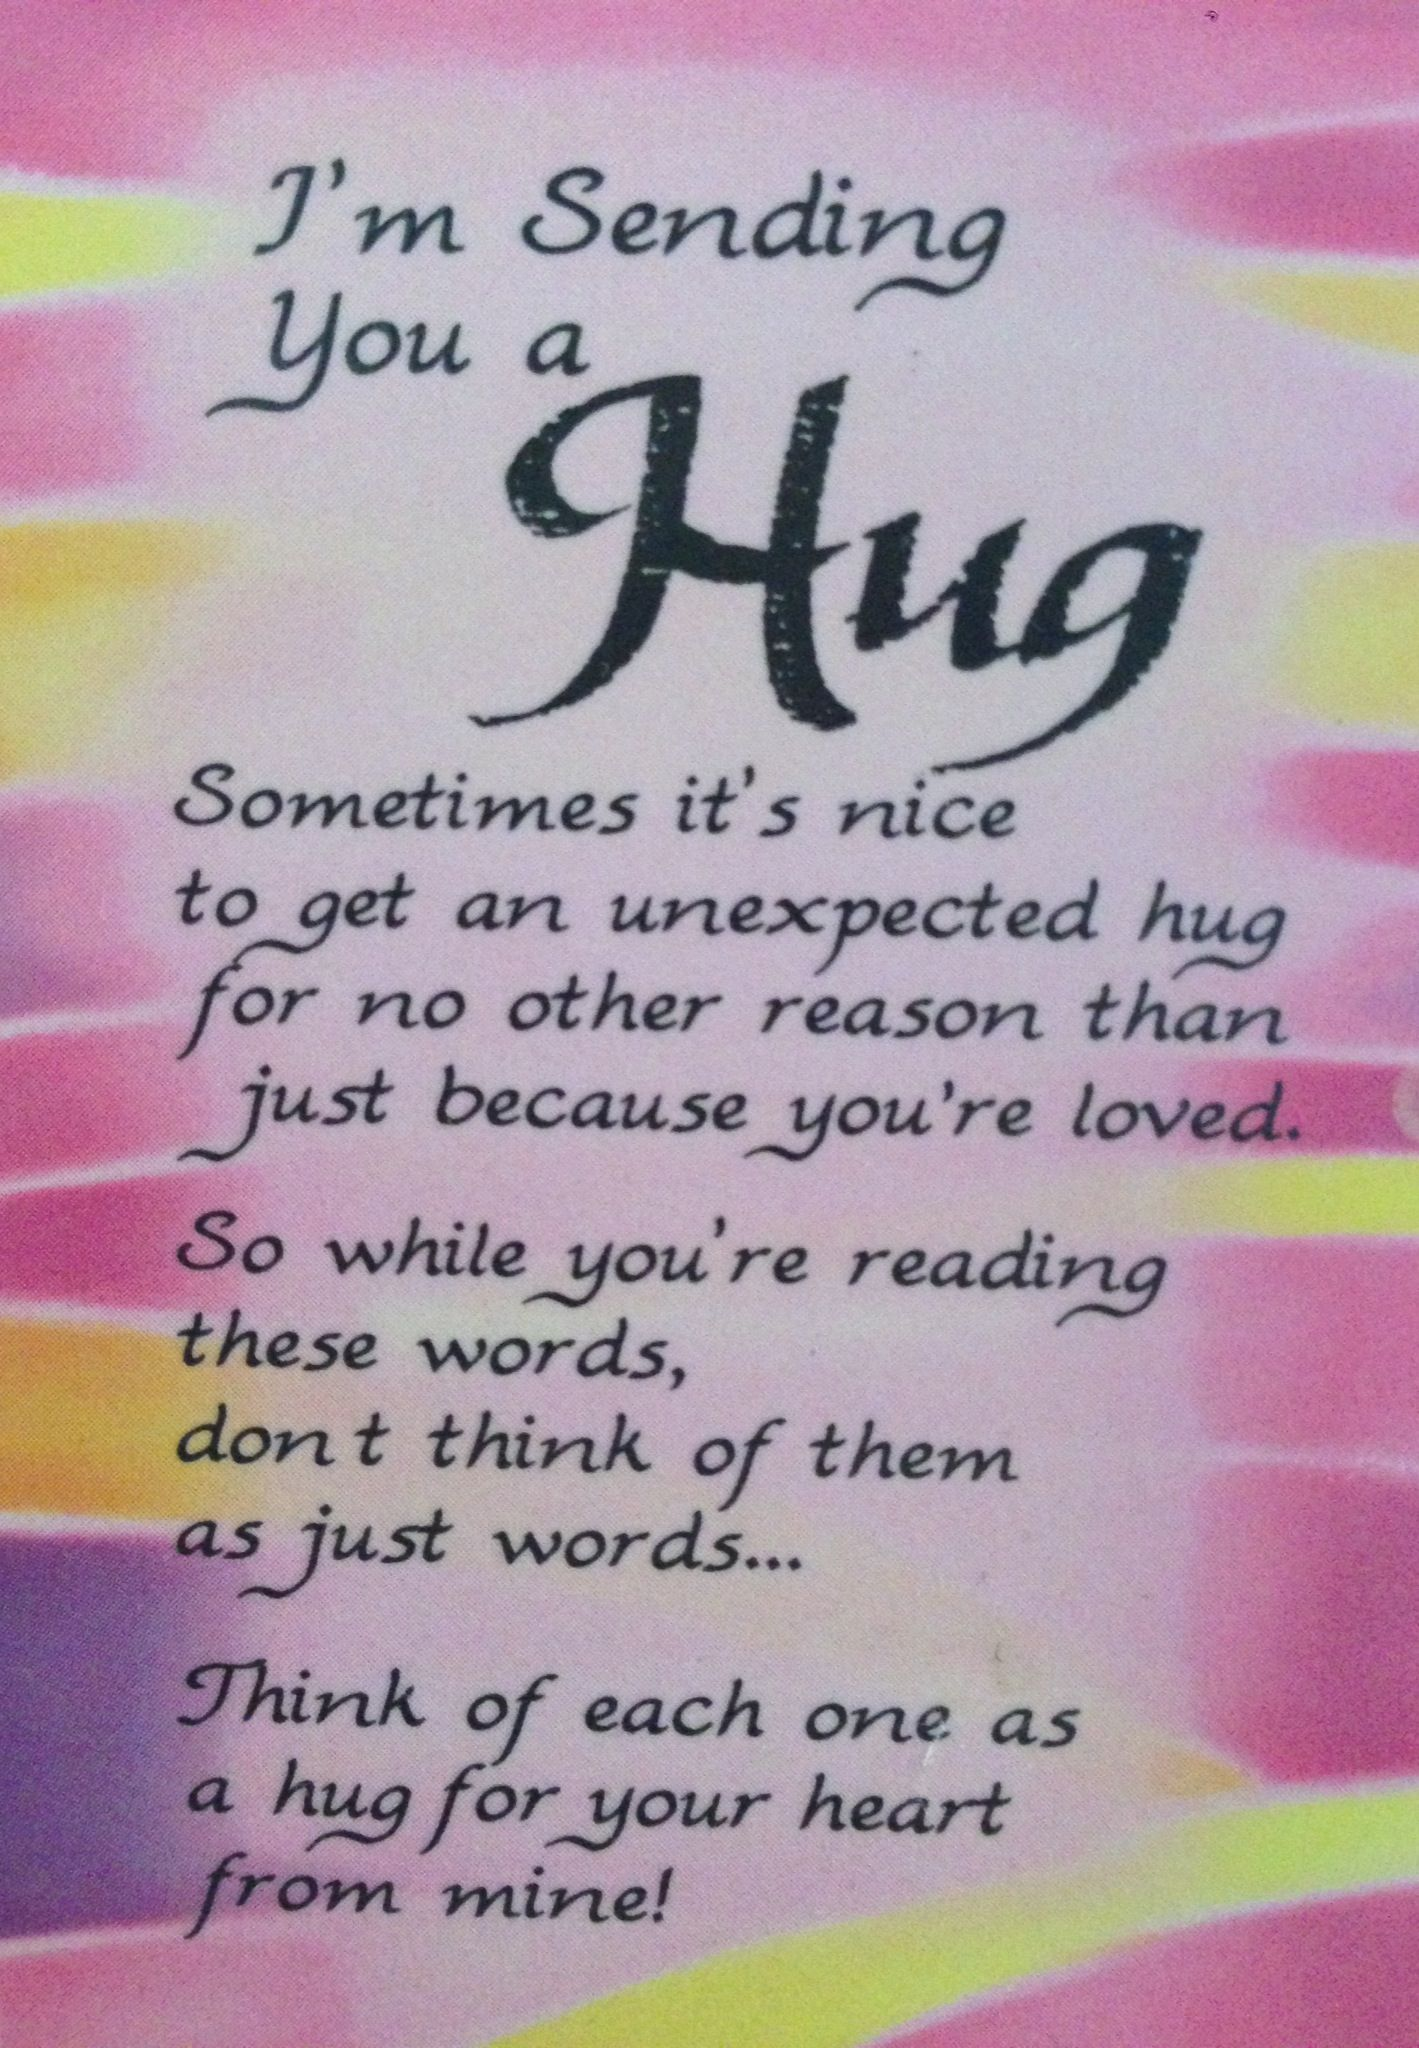 Sending Hugs Quotes Insightf